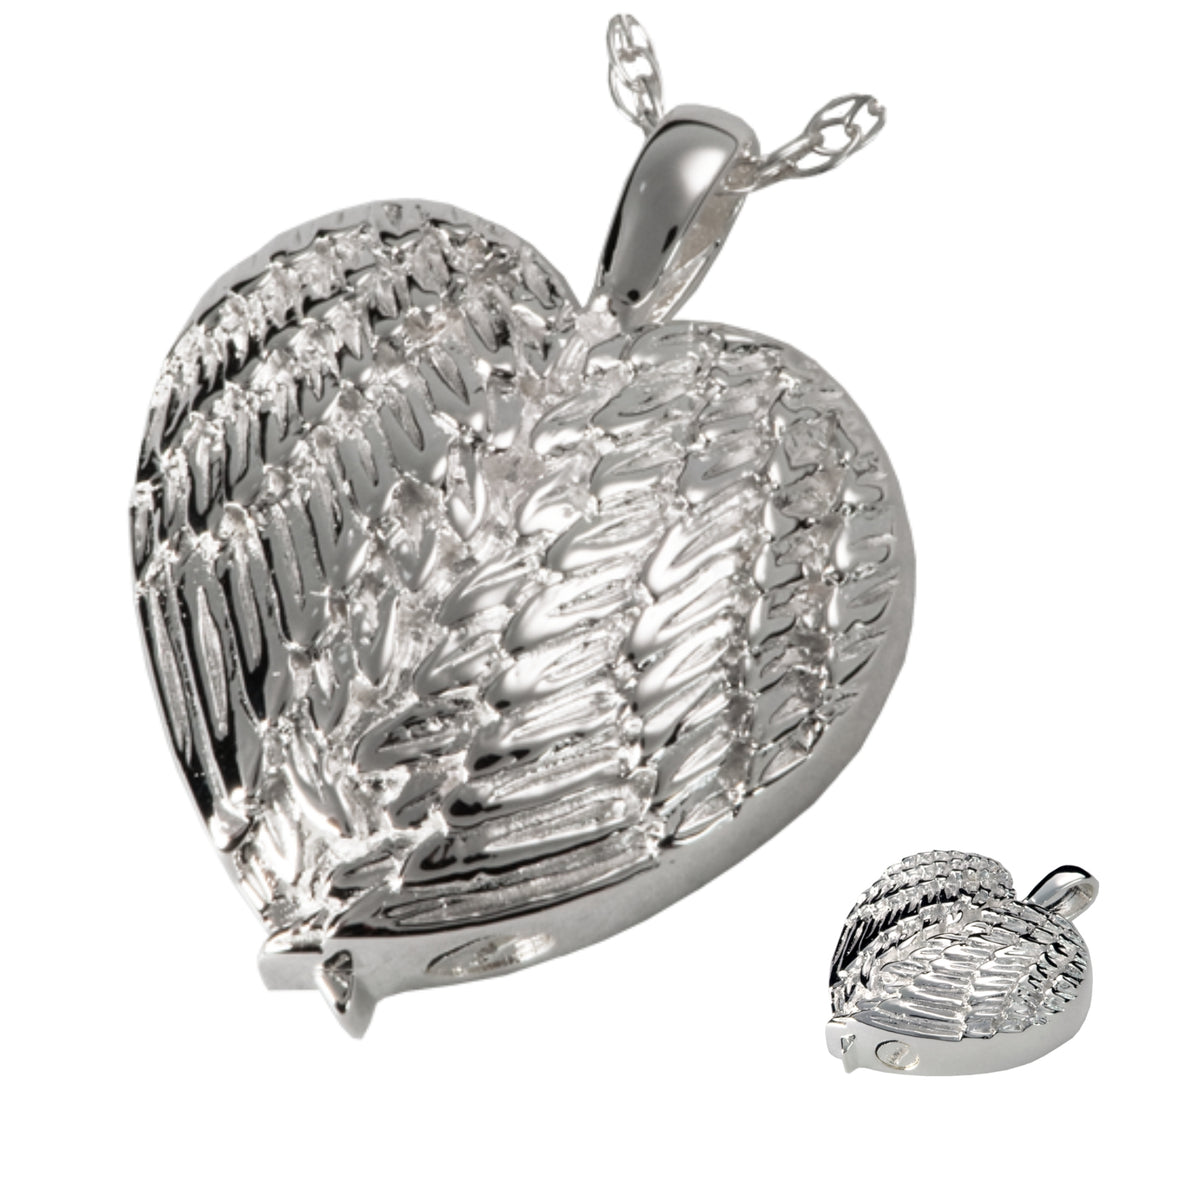 Jewellery Ash Pendant Kensington Winged Heart 925 Silver